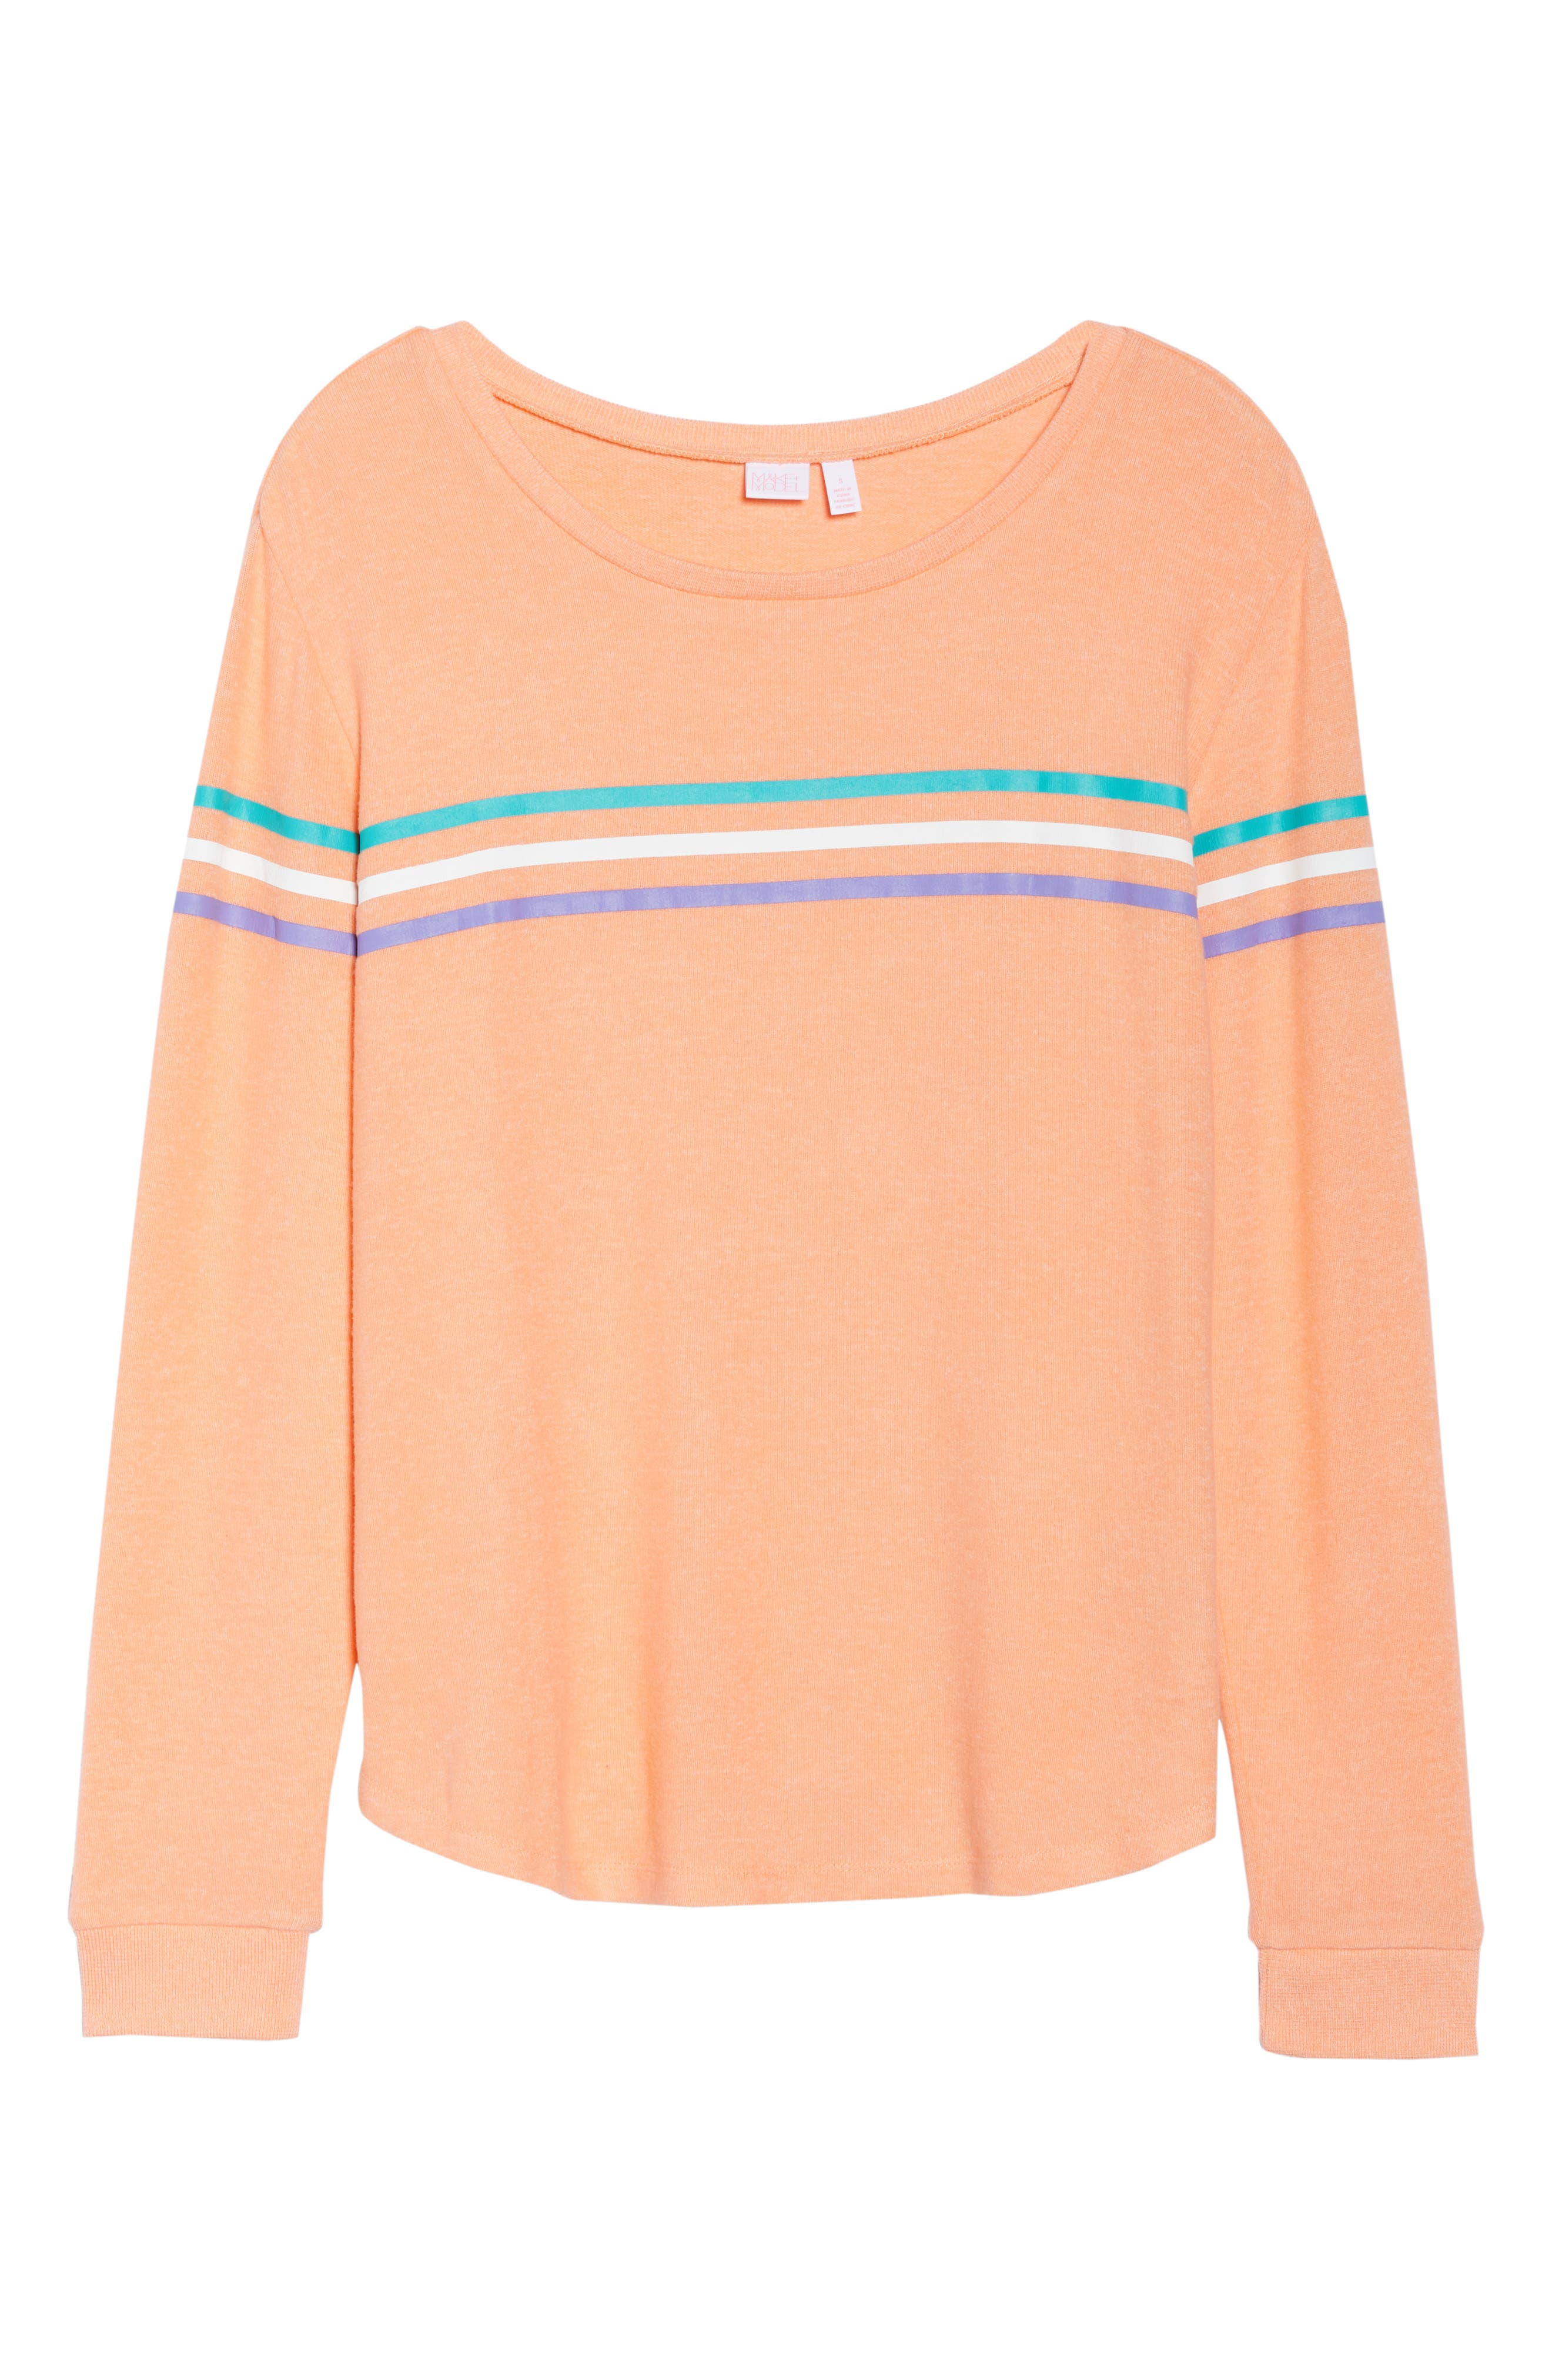 Too Cool Pullover,                             Alternate thumbnail 7, color,                             Coral Pink